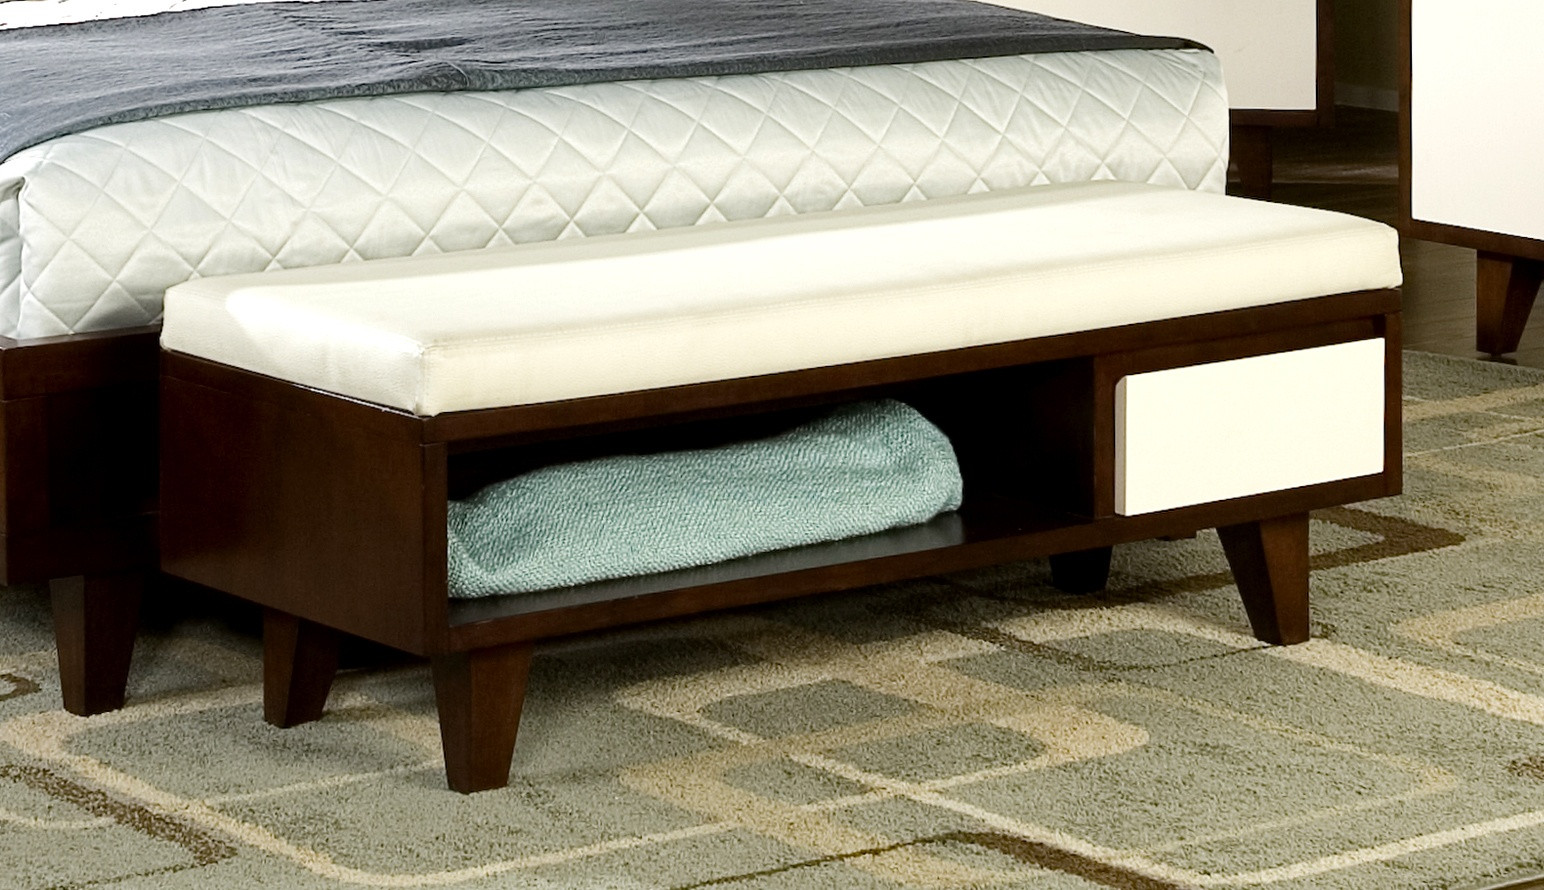 Storage Bench Bedroom  Bedroom Benches with Storage Ideas – HomesFeed